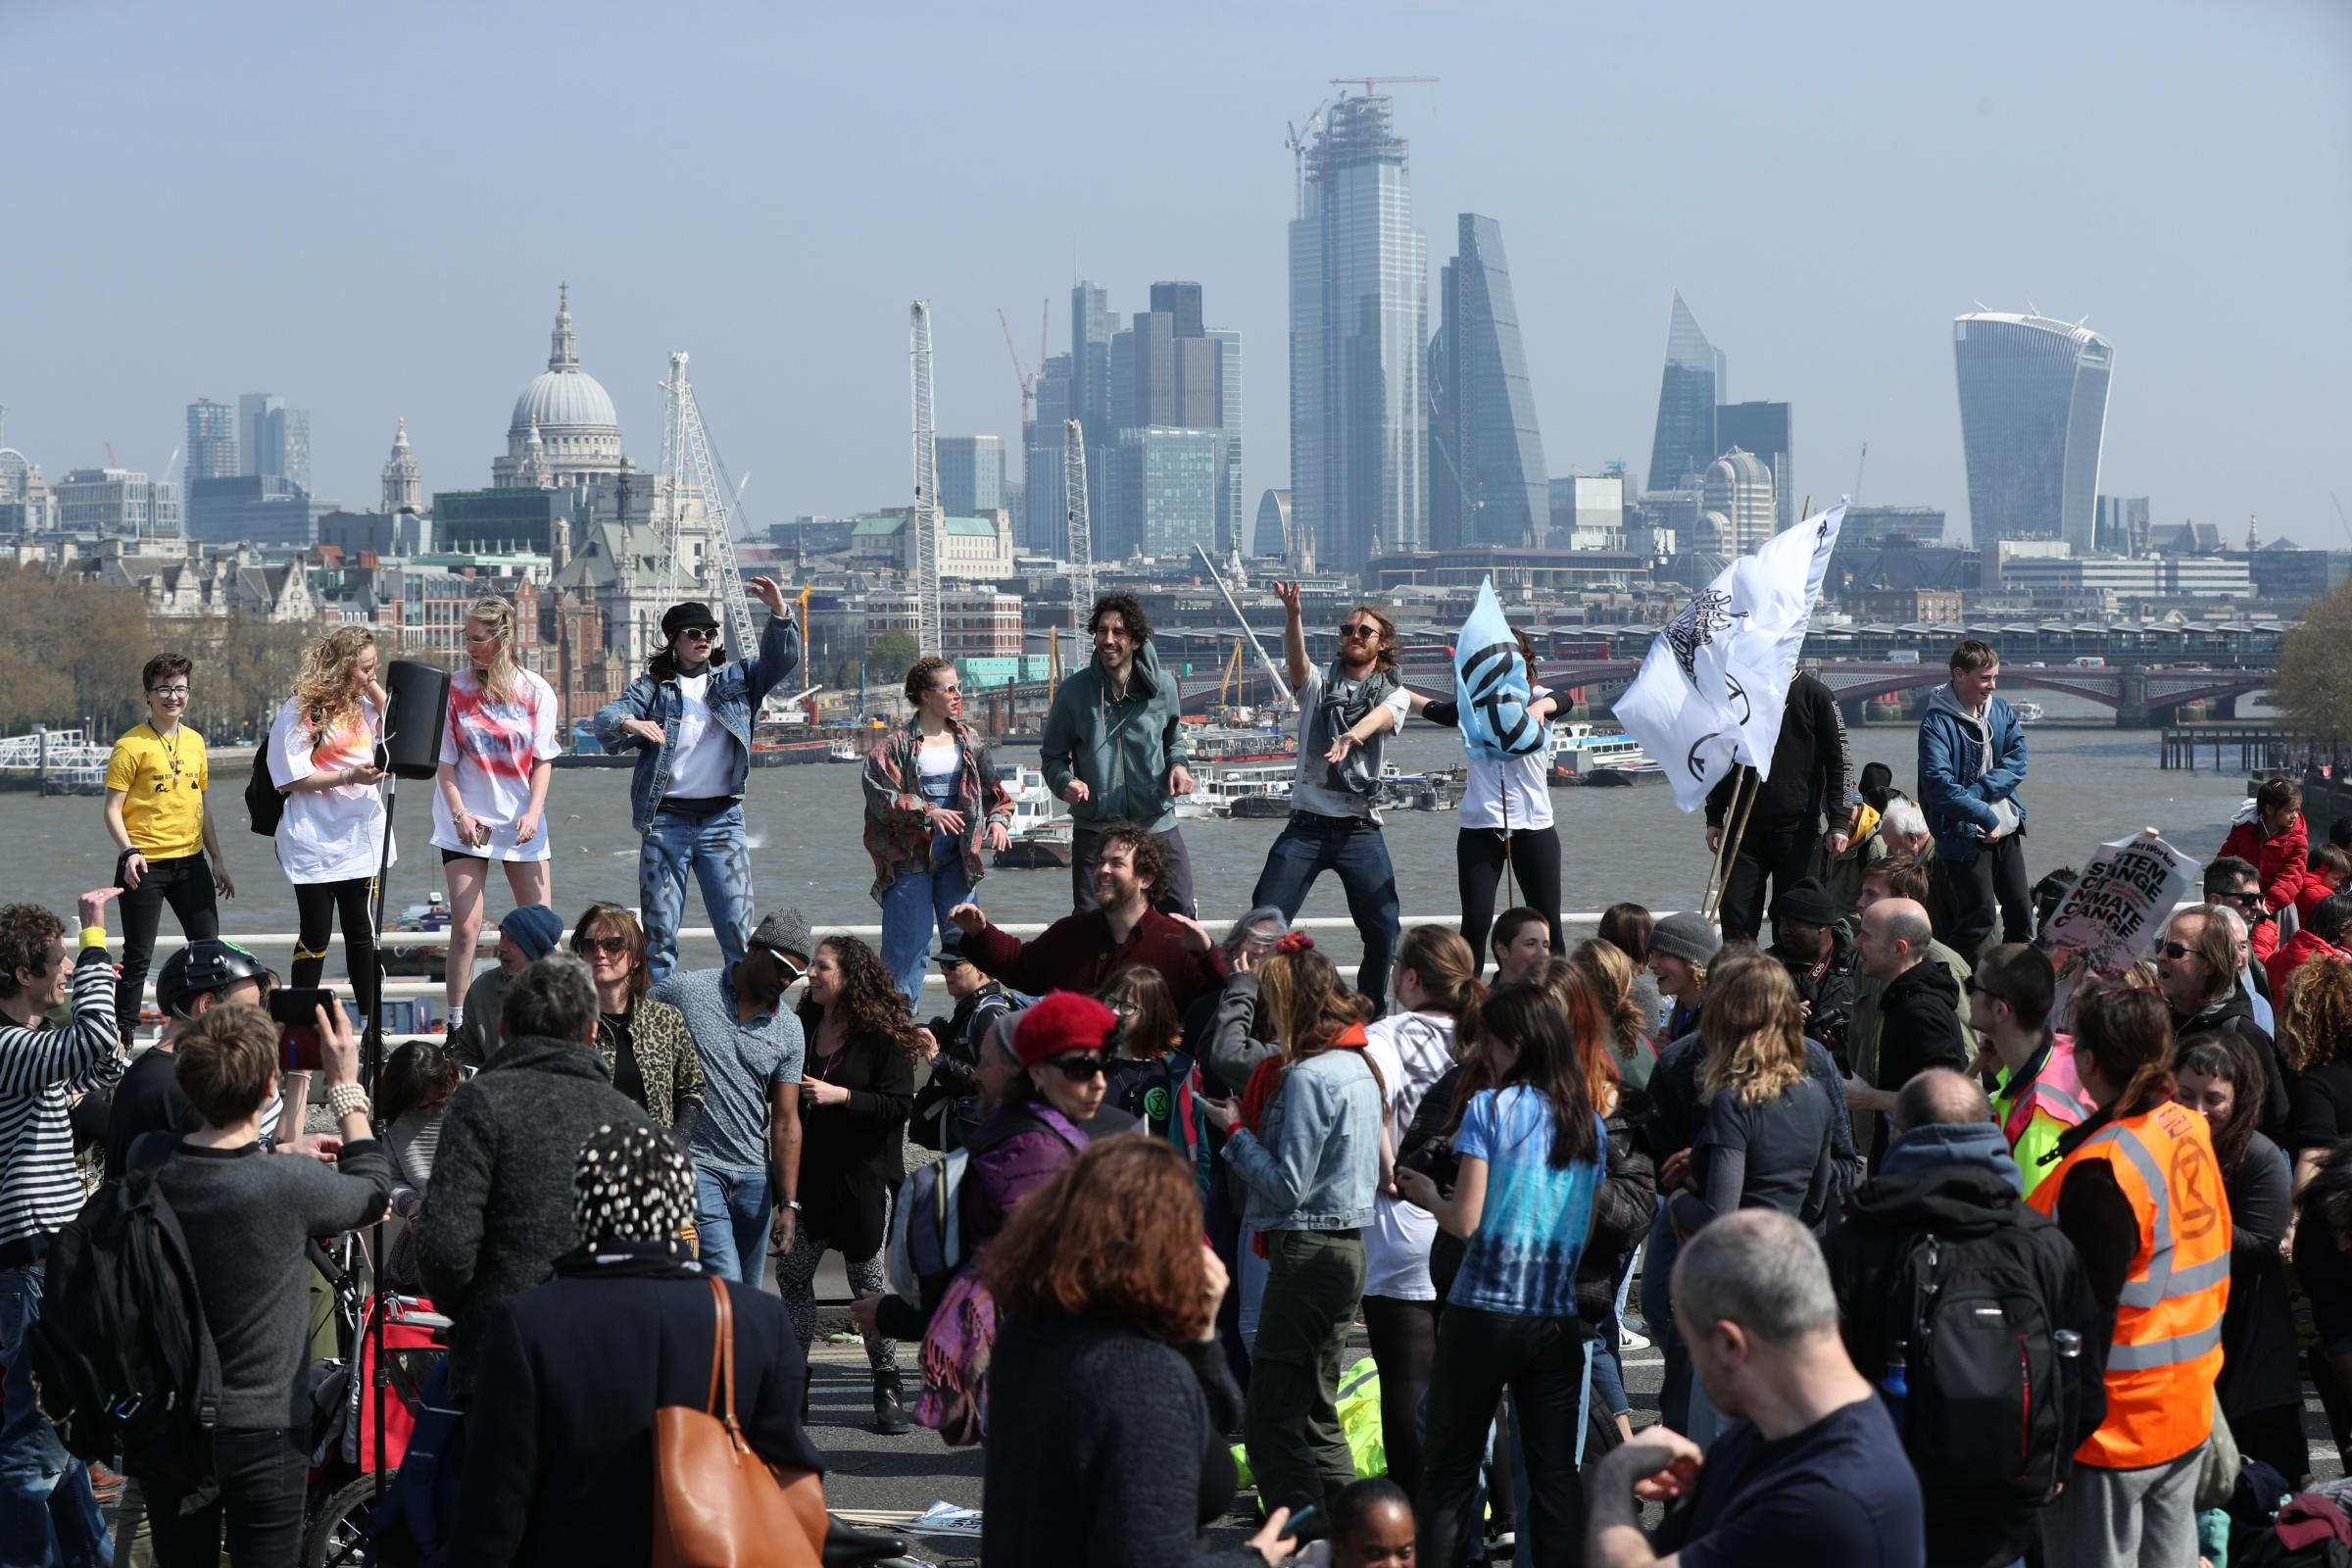 Demonstrators during an Extinction Rebellion protest on Waterloo Bridge in London